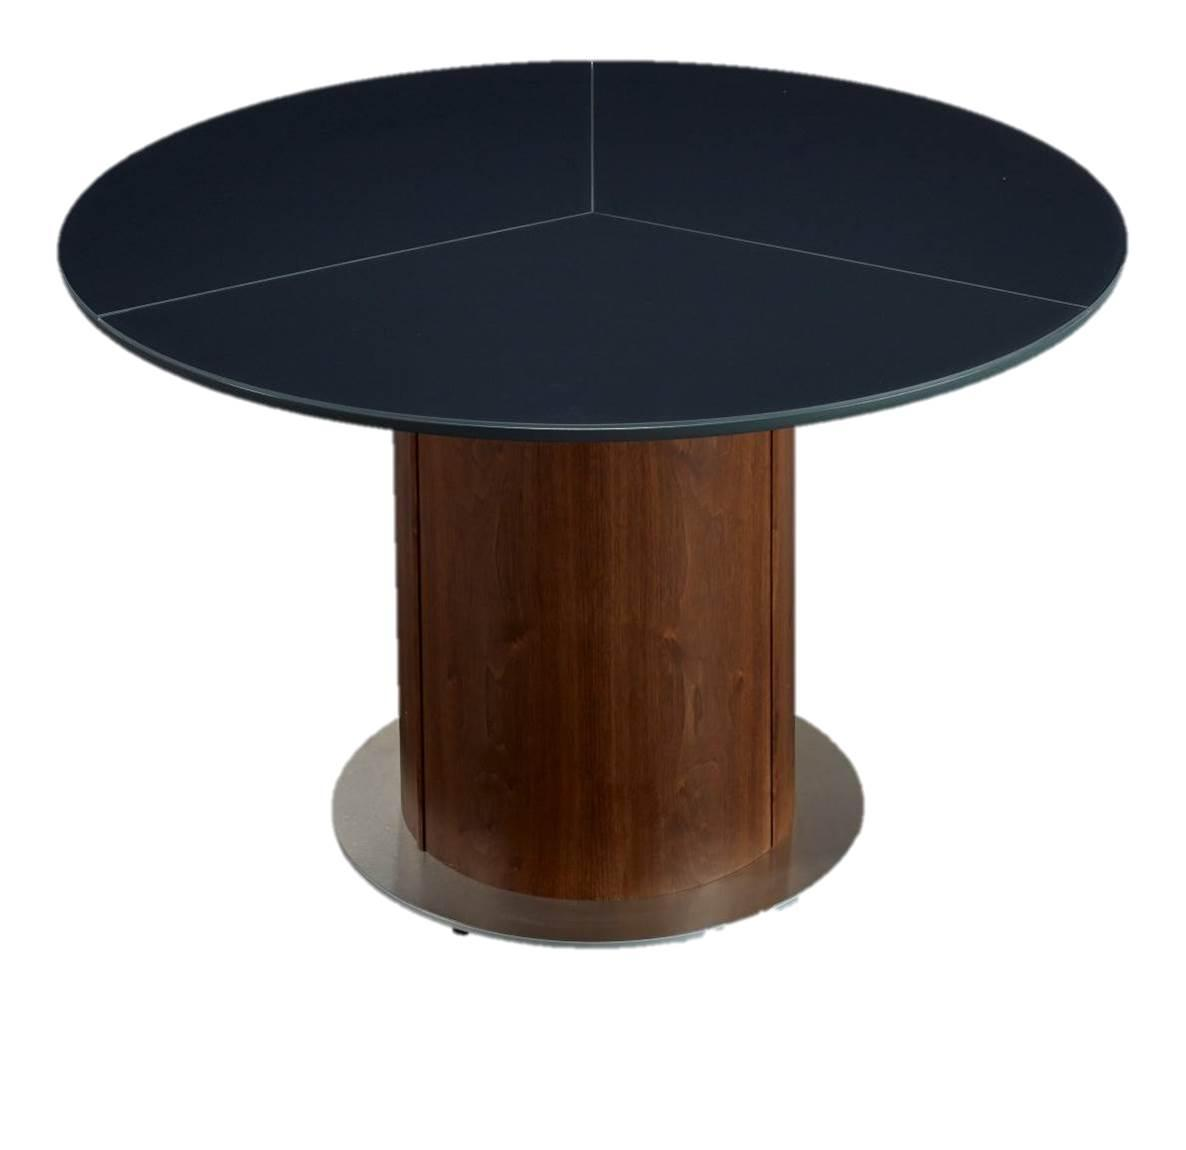 Black extending roung dining table by skovby chairish - Black extending dining table ...